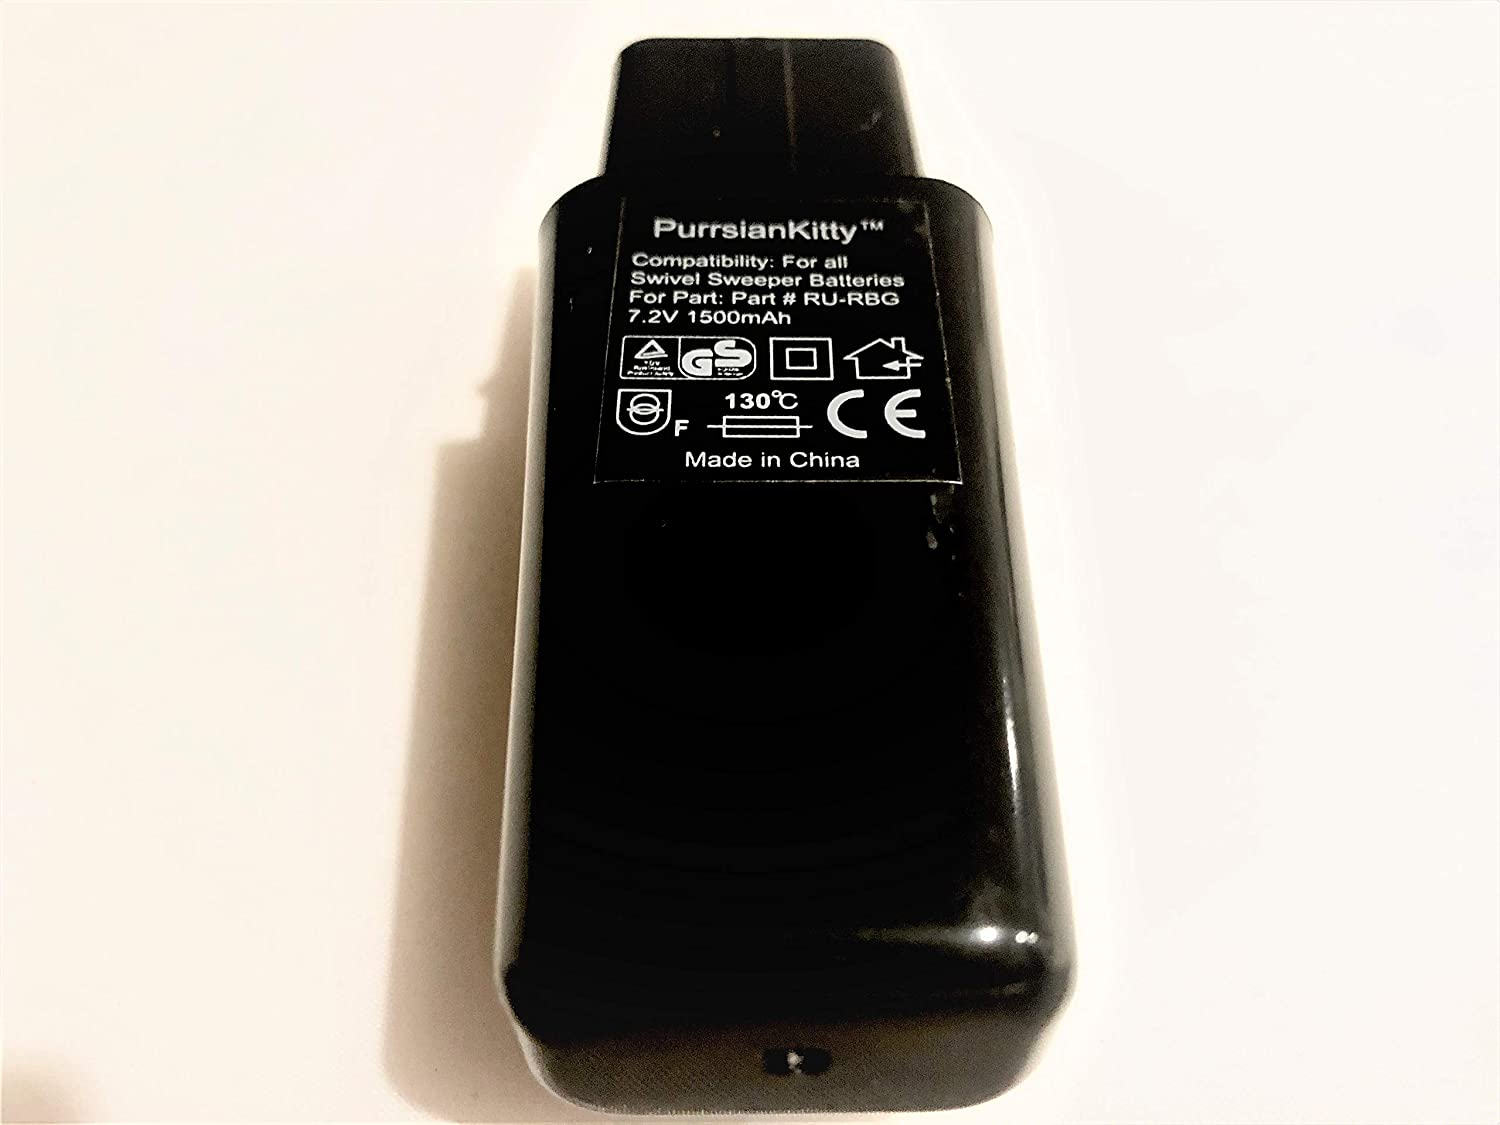 PurrsianKitty 7.2V 1500mAh Ni-MH Replacement Battery for Ontel Swivel Sweeper G1 G2 G3 G6 G8 Max - Replaces Part # RU-RBG - Black